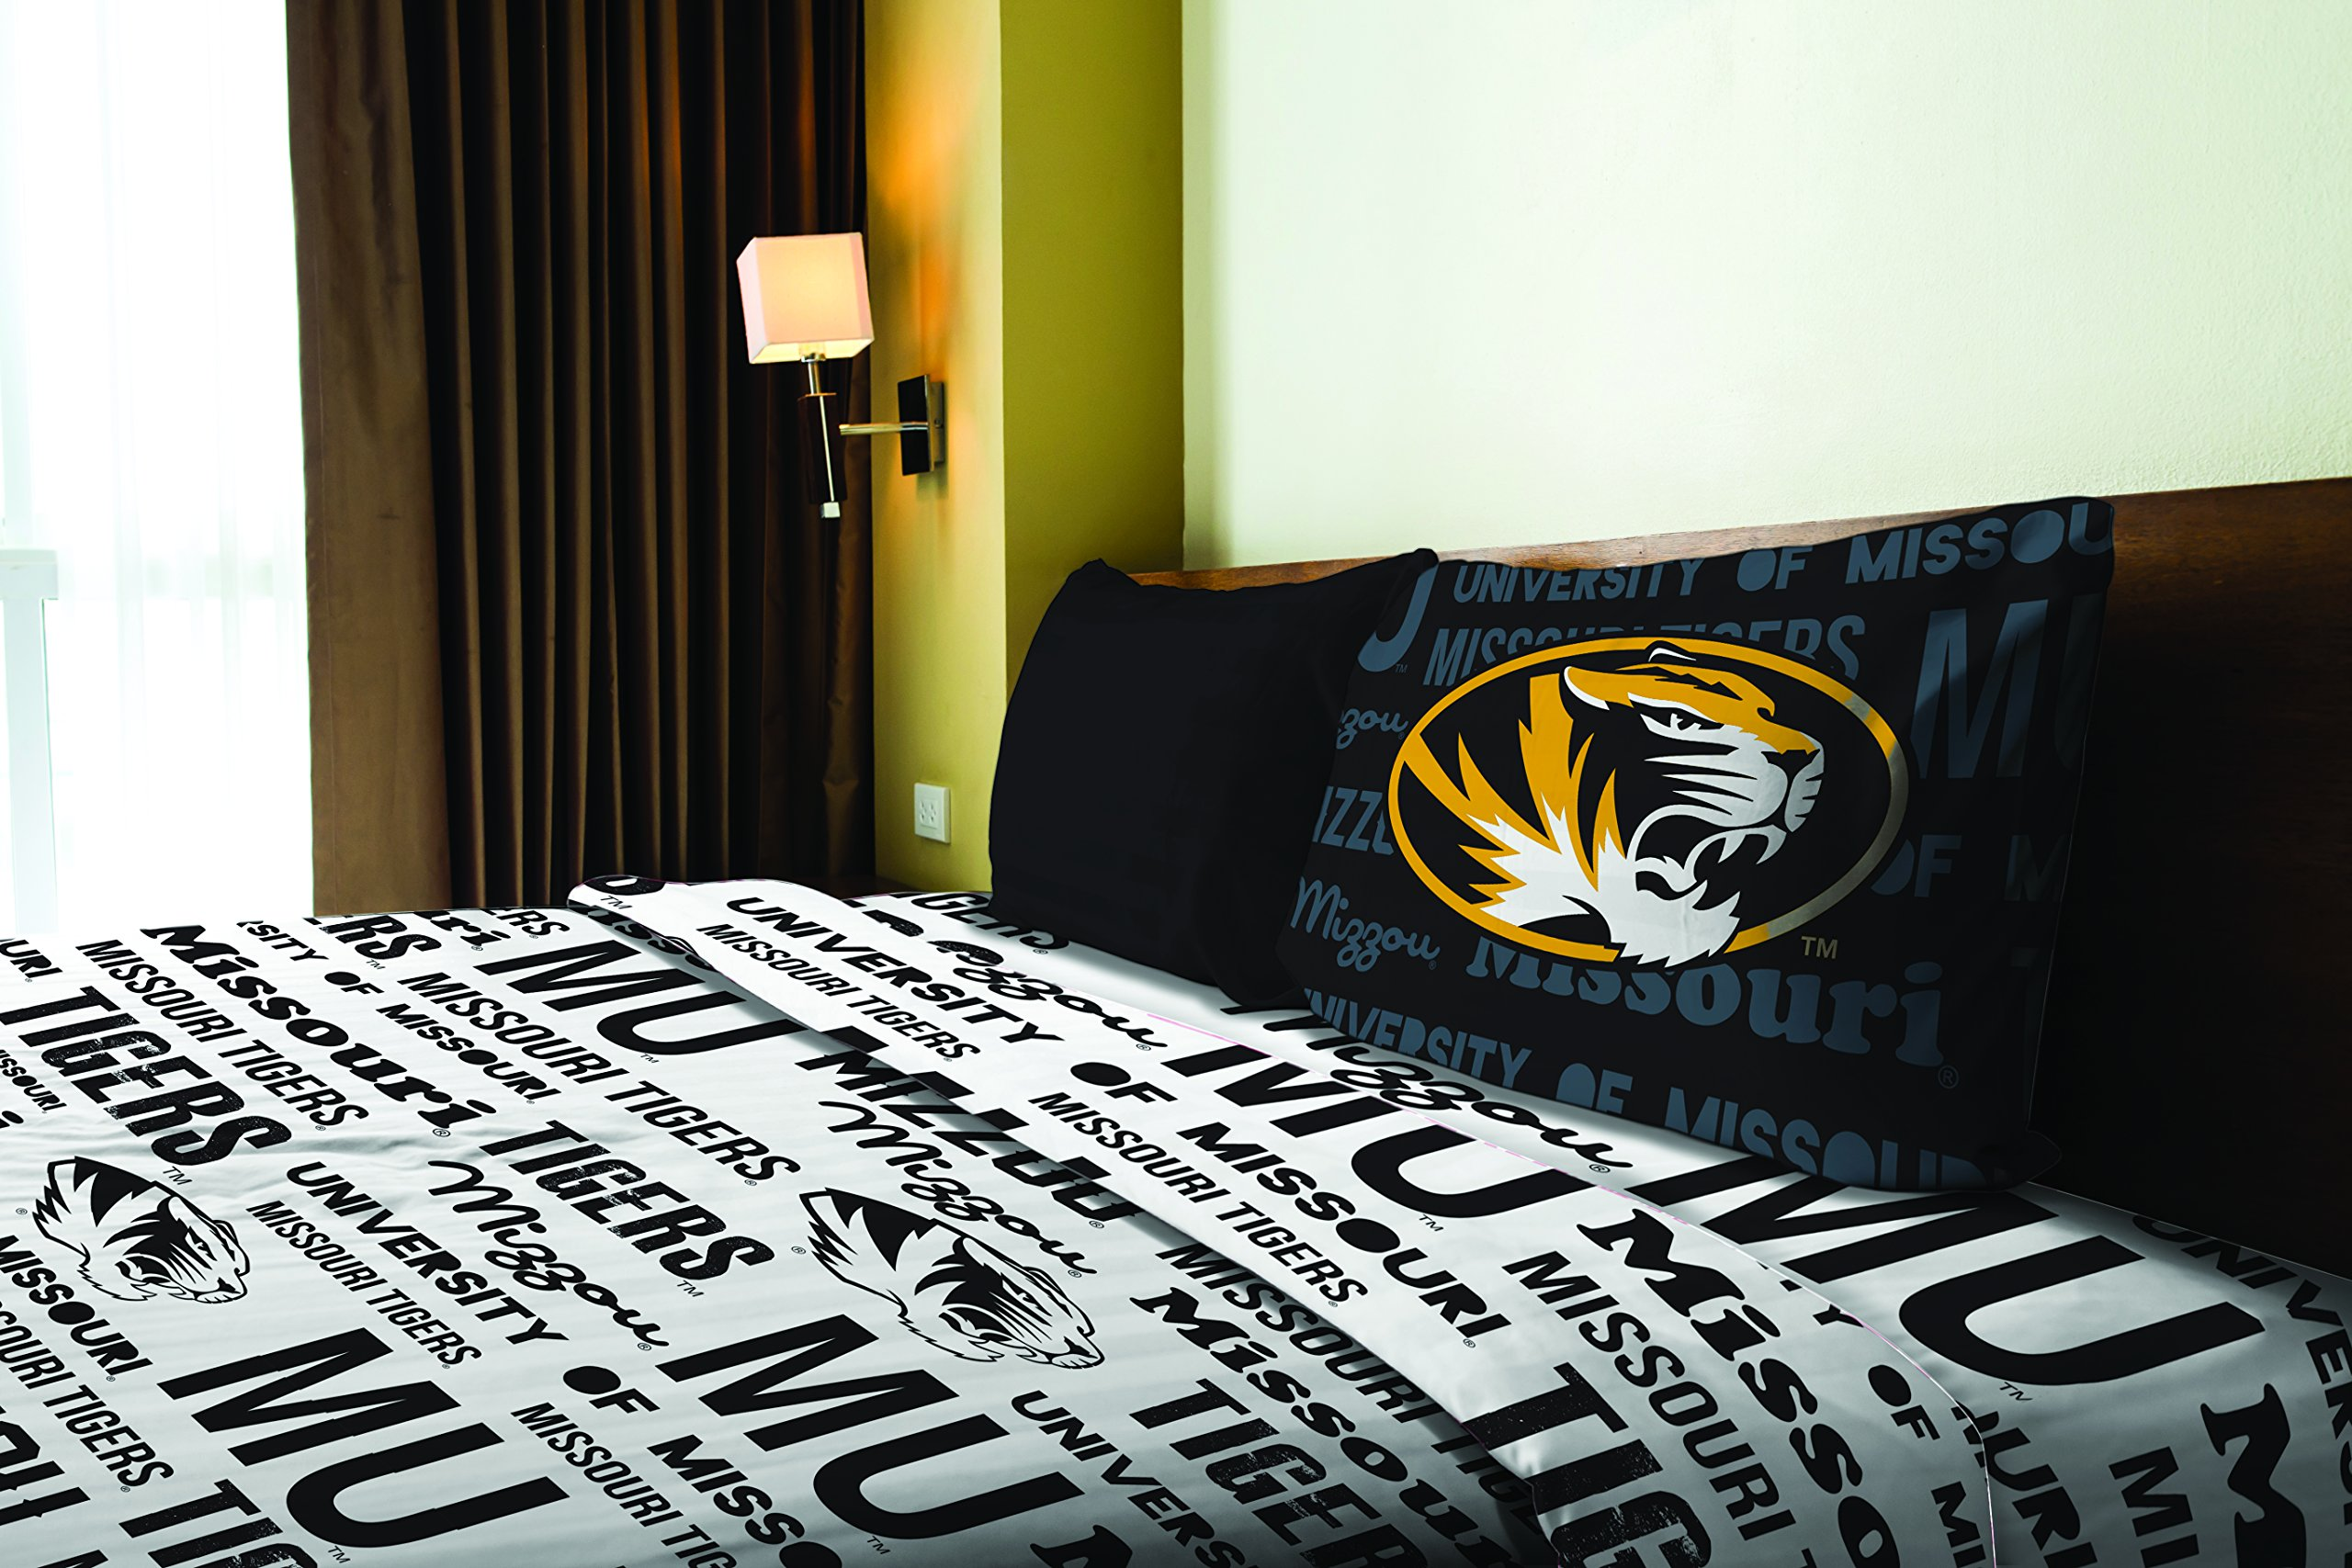 Missouri OFFICIAL Collegiate, Bedding, Anthem Twin Sheet Set (1 Flat 66 x 96, 1 Fitted 39 x 75 + 12 pocket, and 1 Pillowcase 20 x 30)